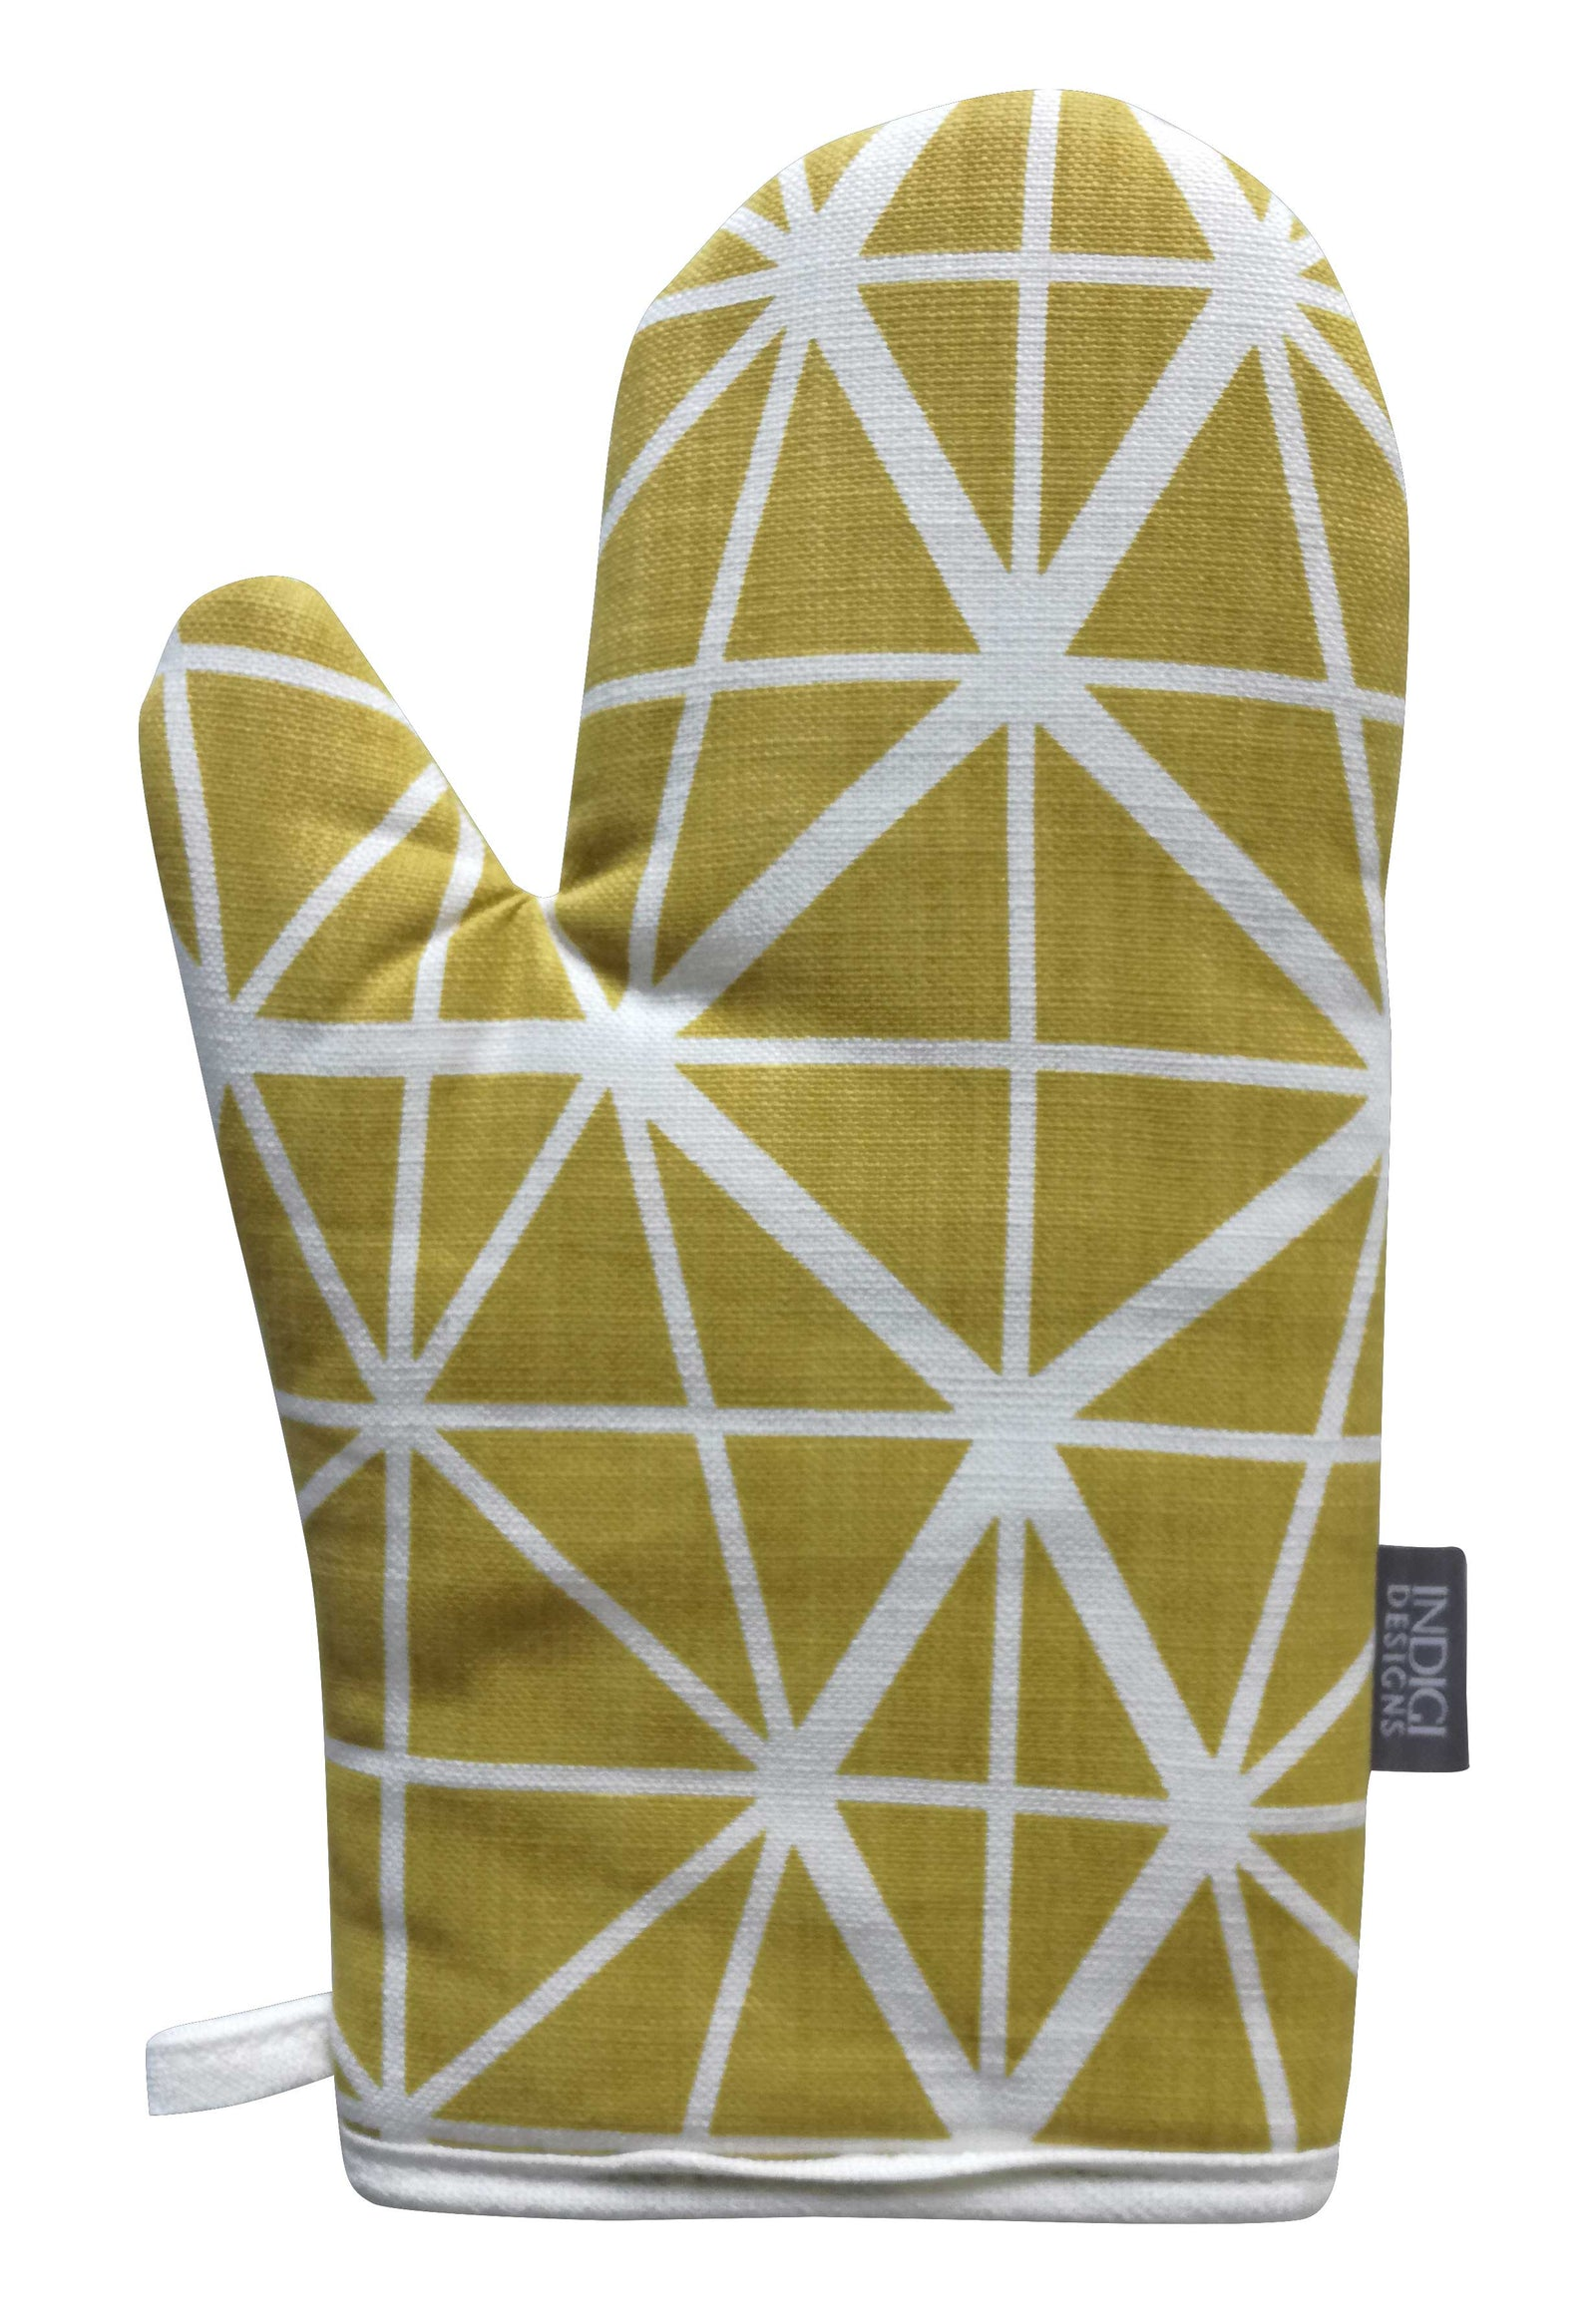 Facet Harvest Oven Glove